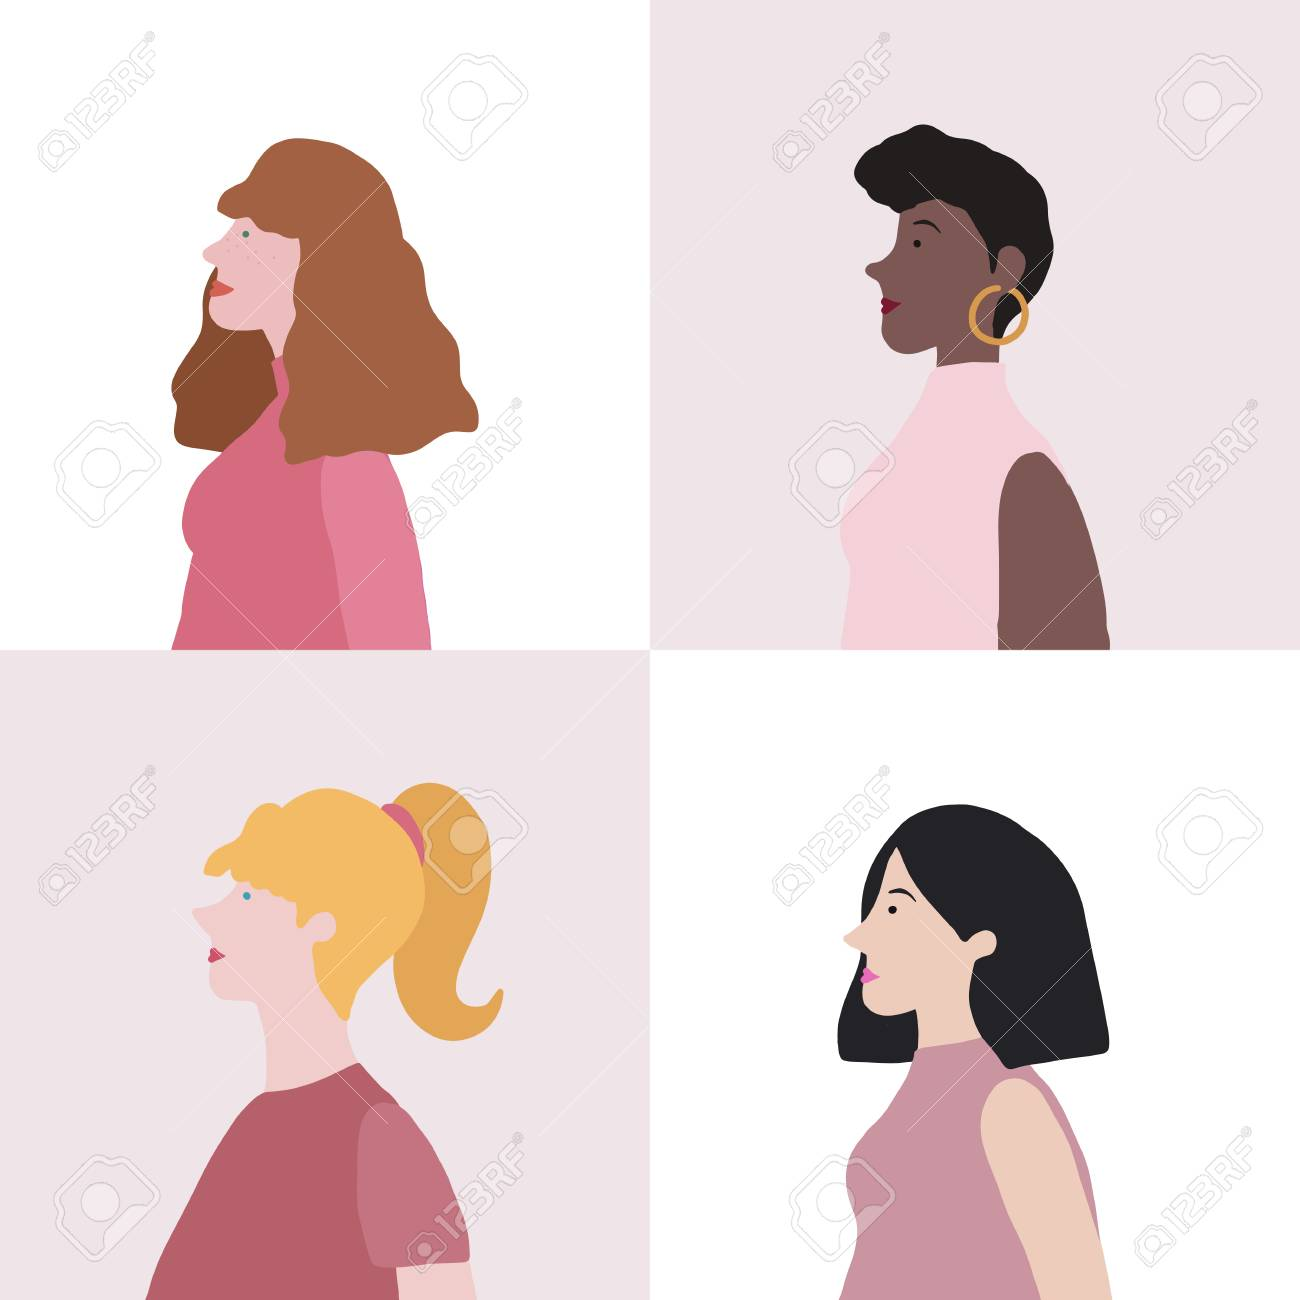 Collection of women in profile vector - 126249041